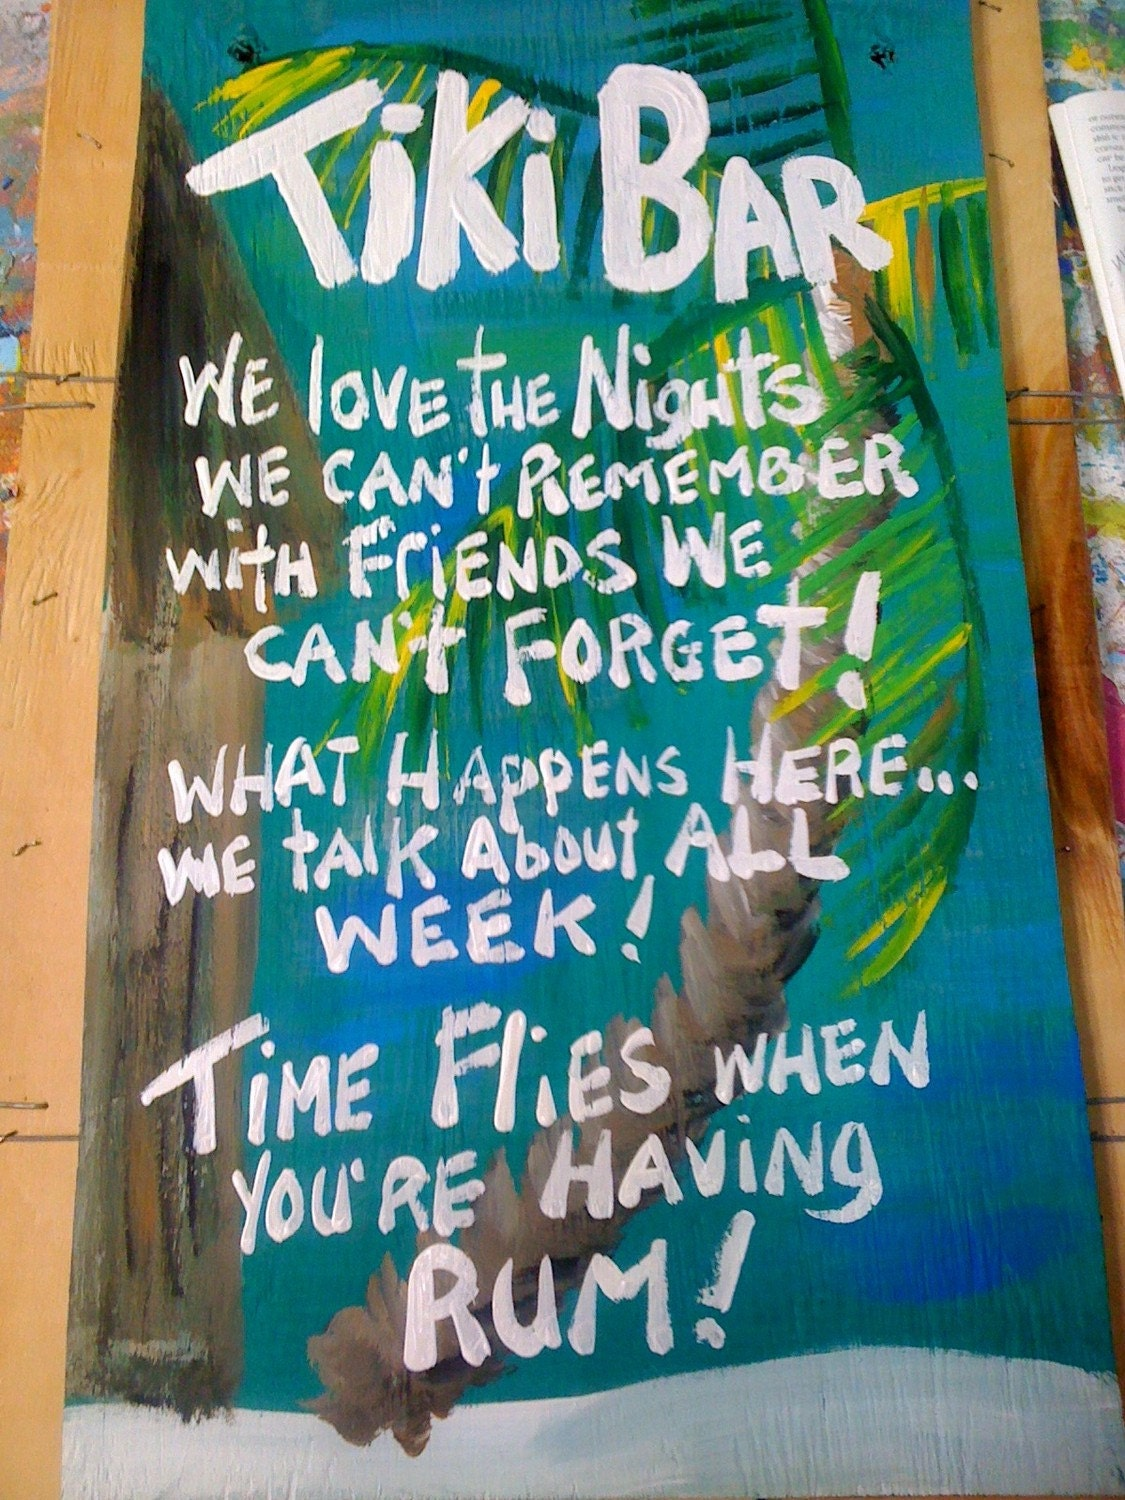 Funny Beach Quotes And Sayings: RhondaK Mutiple Funny Saying Tiki Bar Sign Large With Three